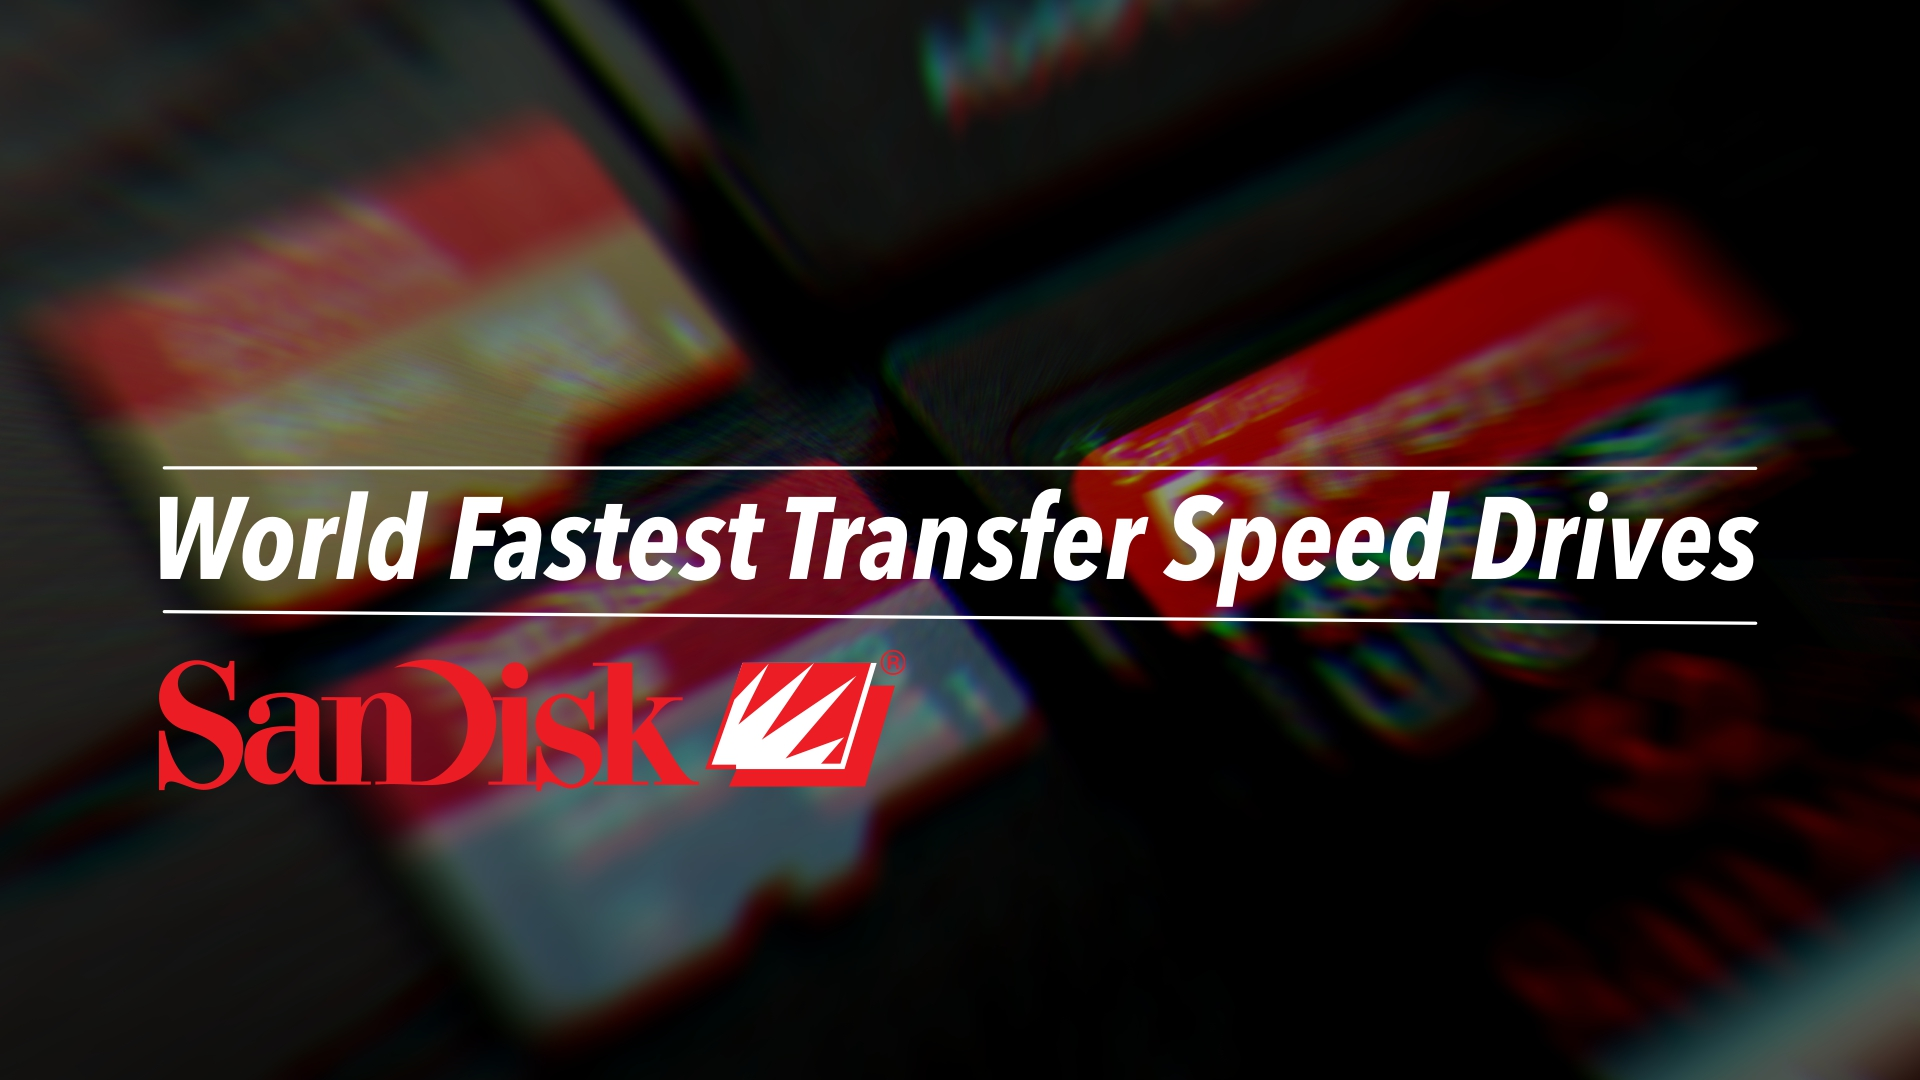 SanDisk Introduce, World Fastest Transfer Speed Drive